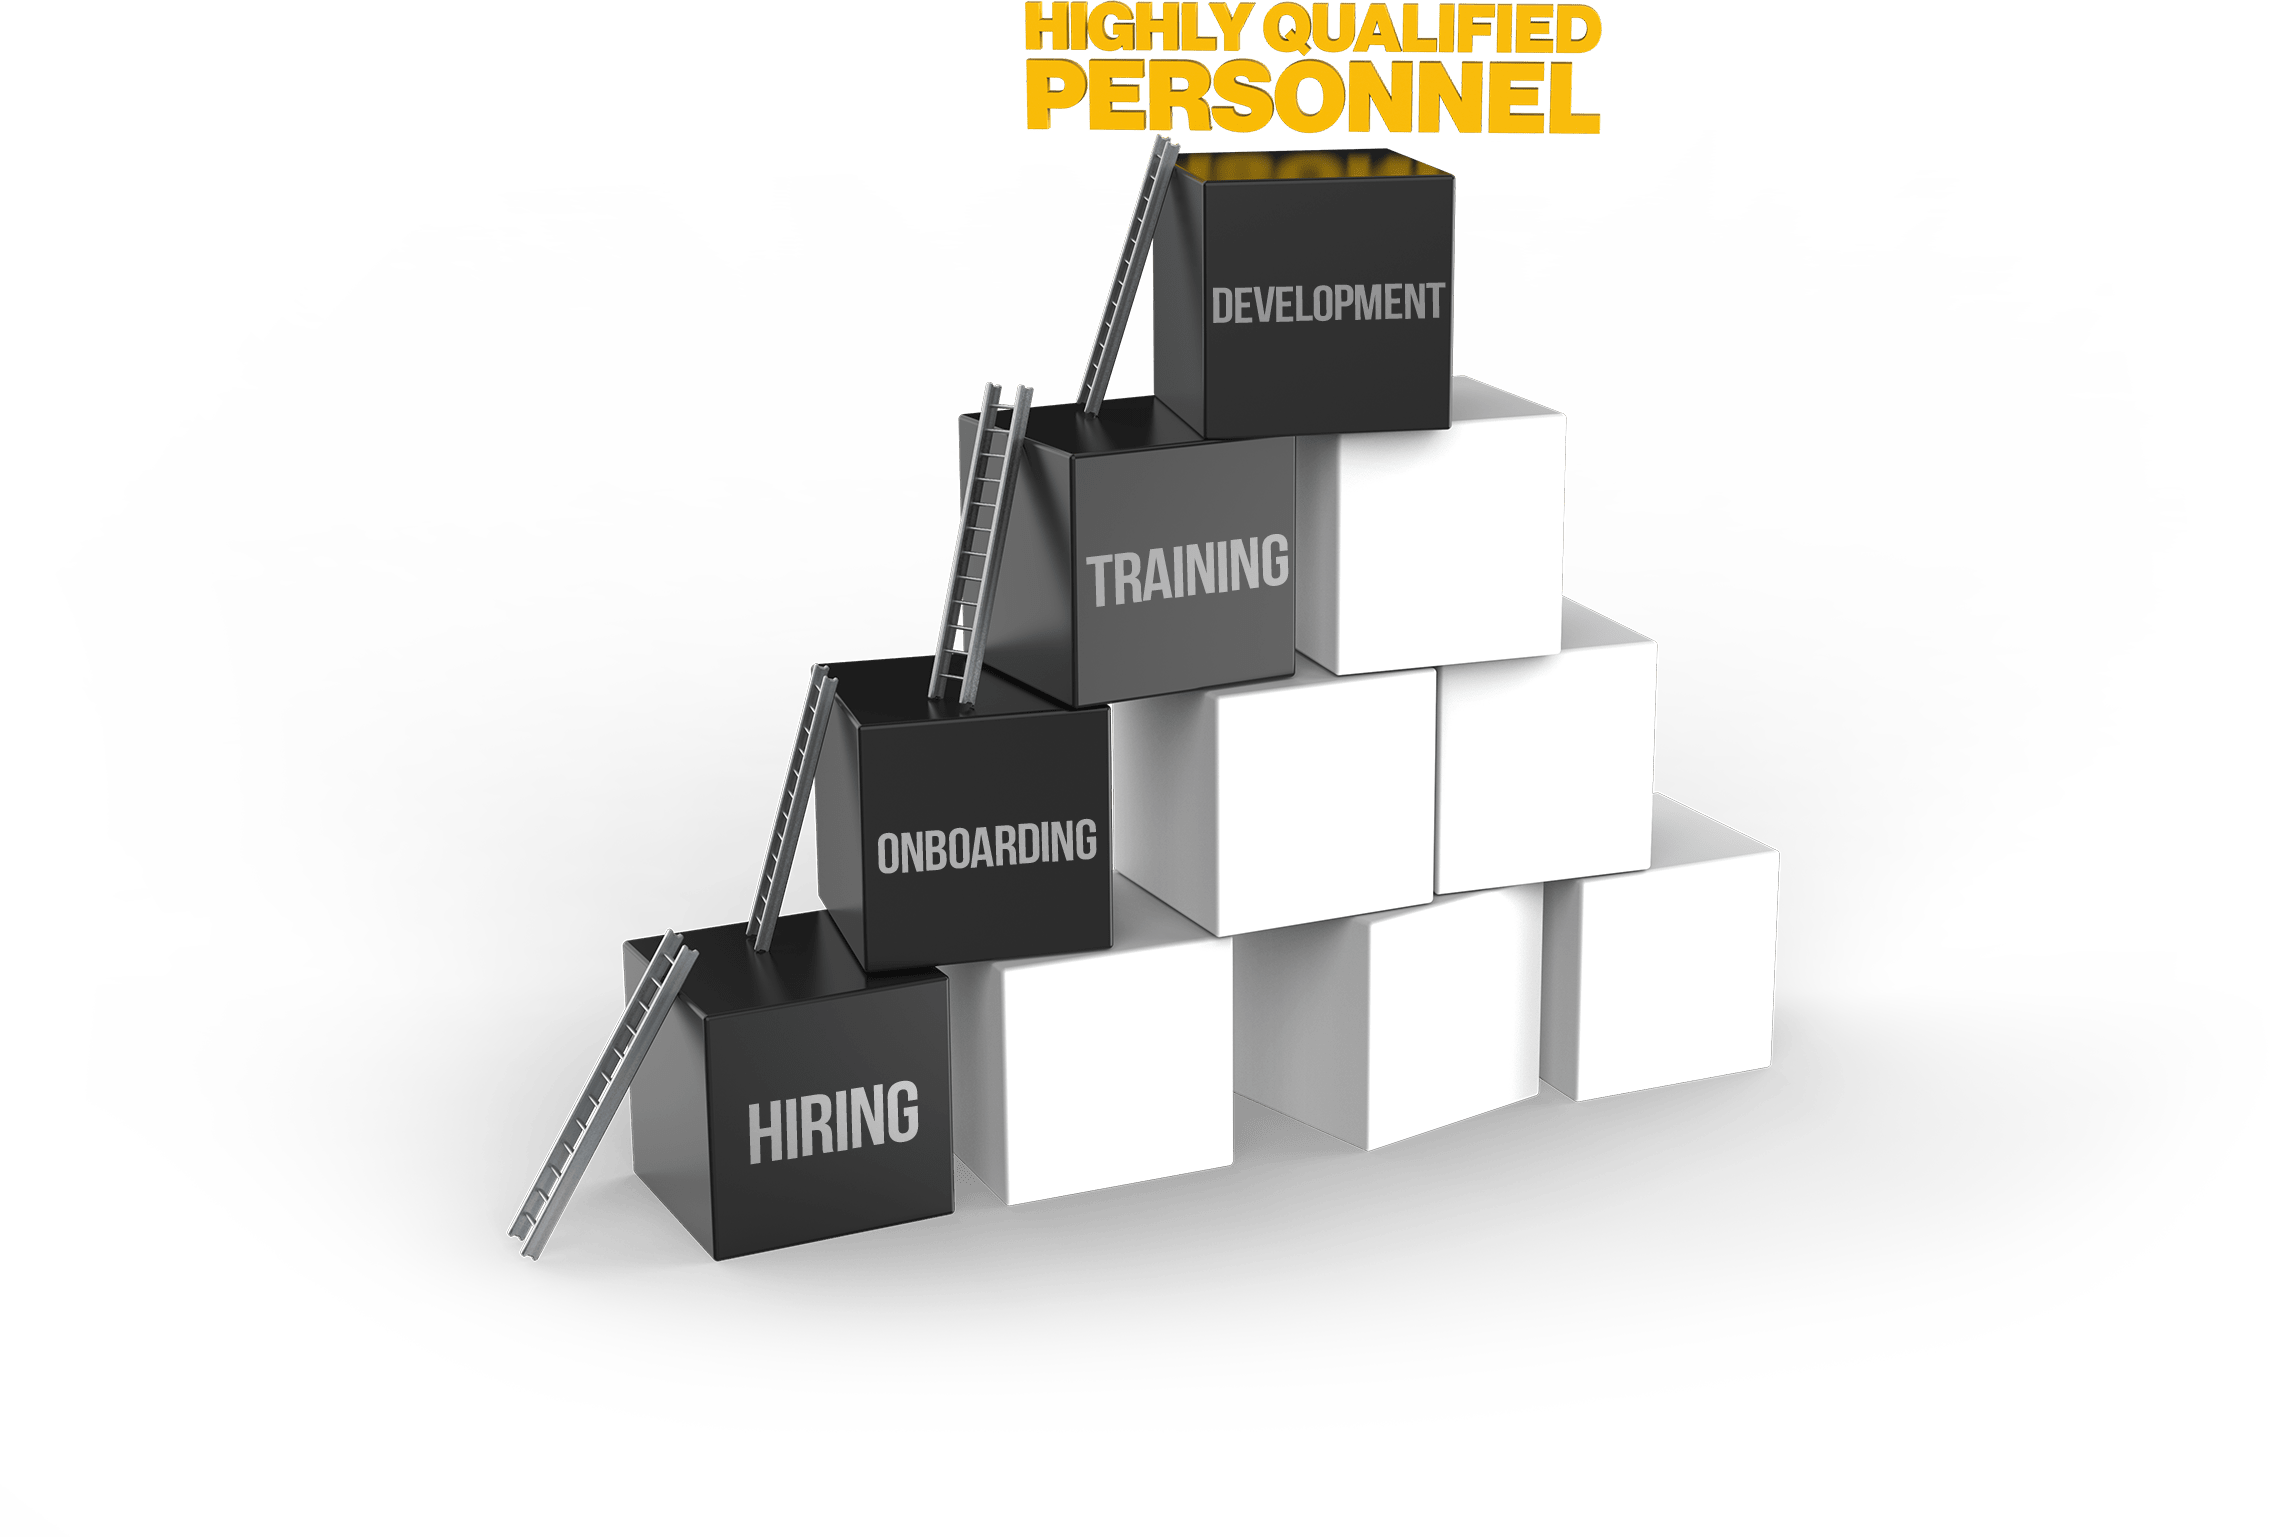 highly-qualified-personnel